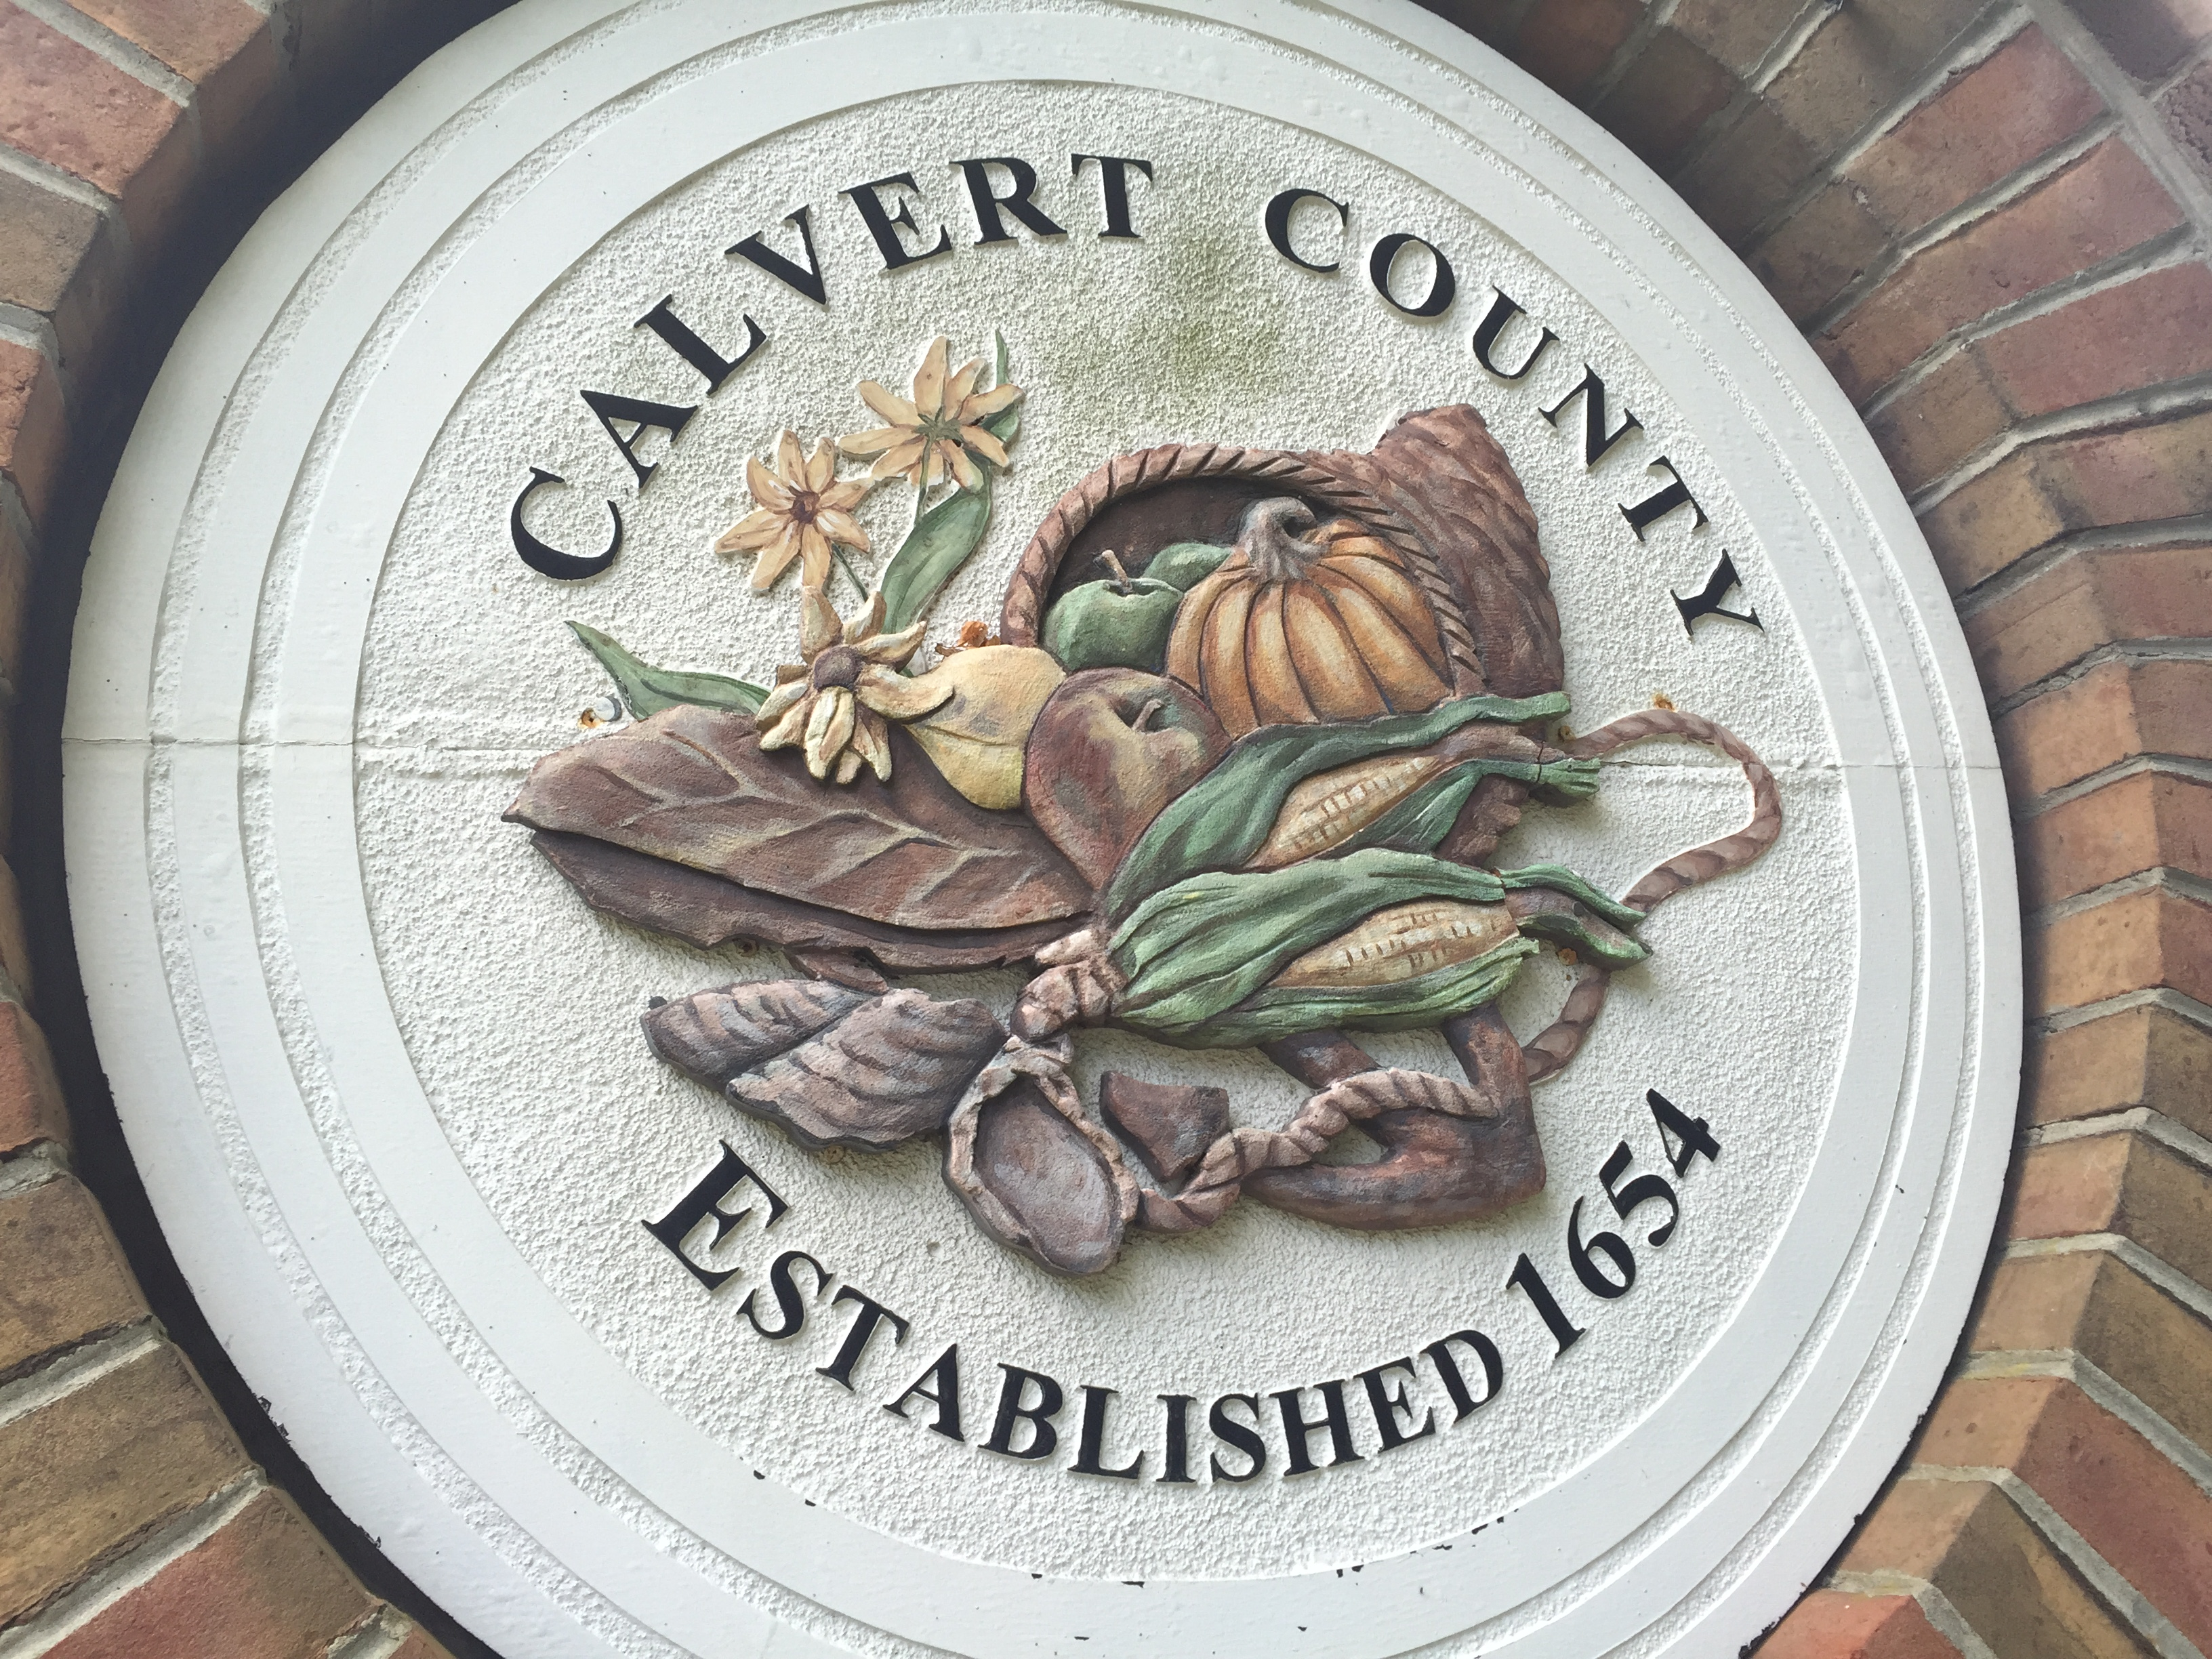 Calvert Co. hikes property taxes for first time since 1987